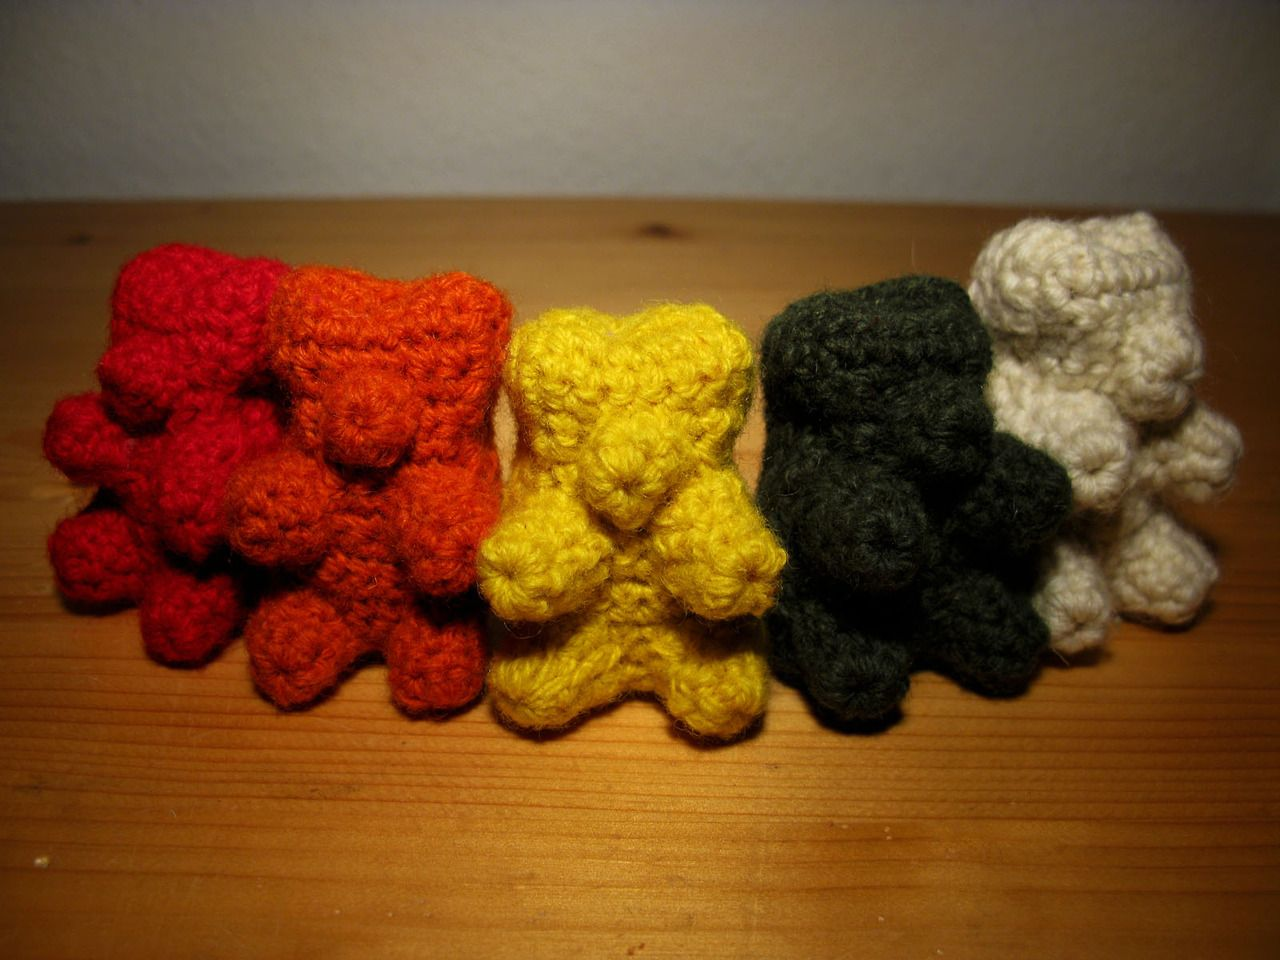 Crochet gummy bear pattern | Things That Inspire Us | Pinterest